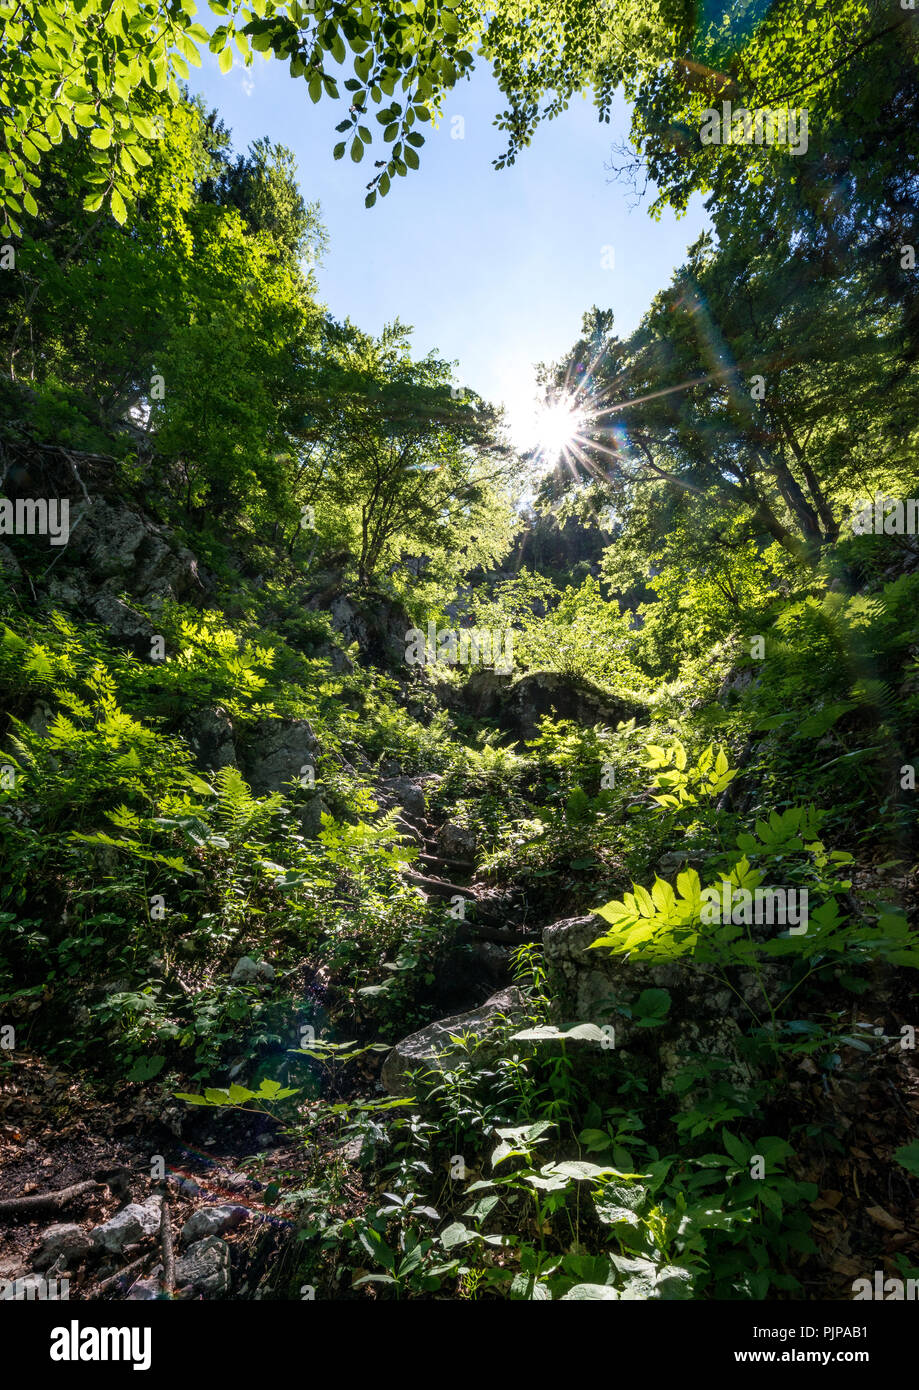 Sun shines through leaves in the forest, Sagereckersteig, hiking trail from Salet to Kärlingerhaus, Berchtesgaden National Park - Stock Image